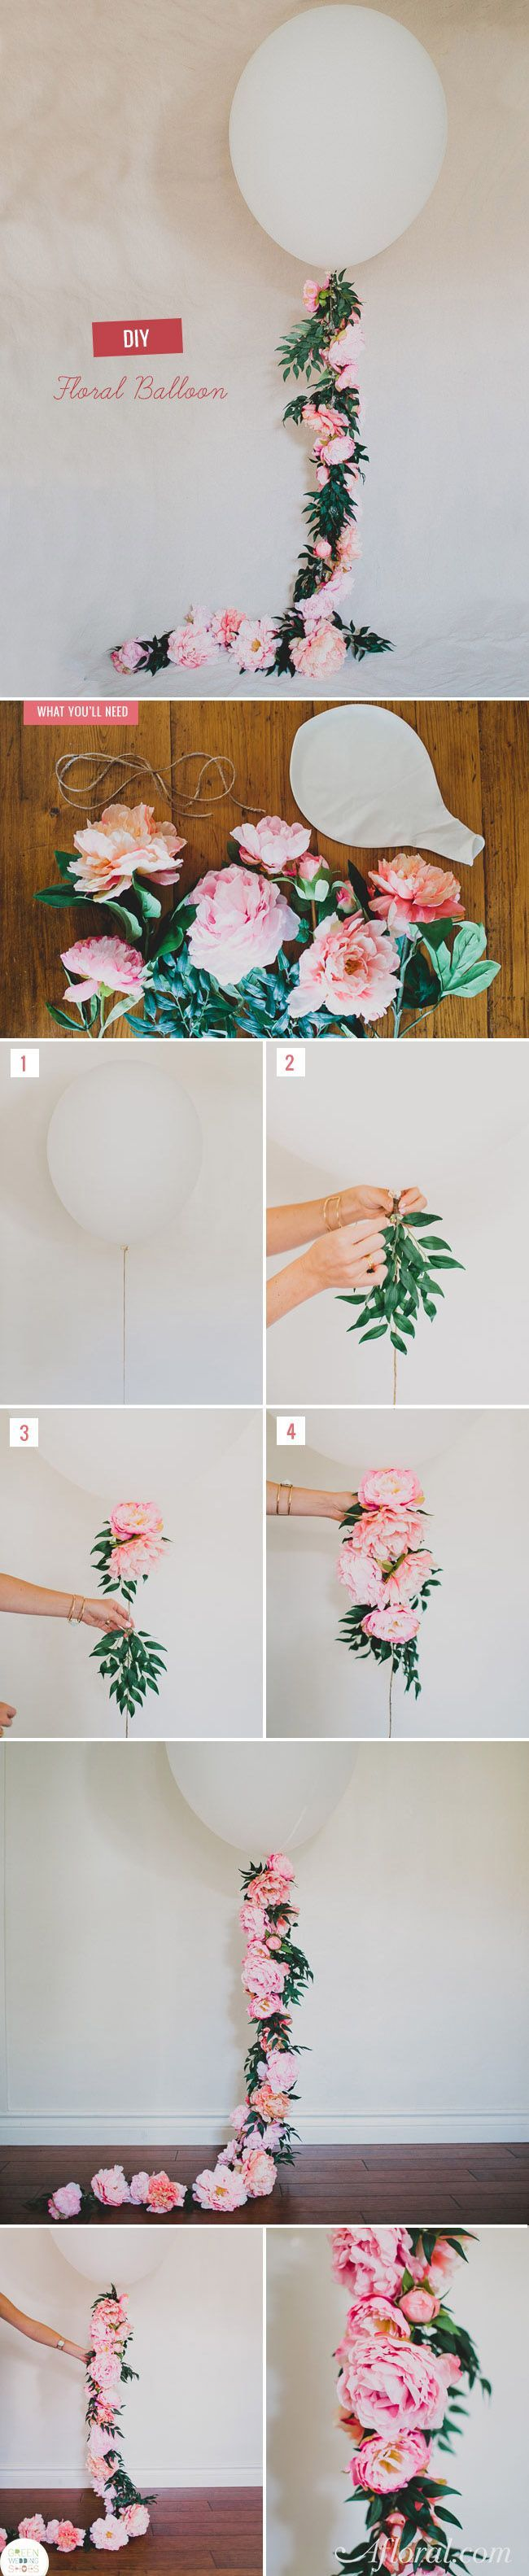 Decorate your wedding, bridal or baby shower with this adorable floral balloon designed by Green Wedding Shoes. Follow this simple DIY and find everything you need at http://Afloral.com.